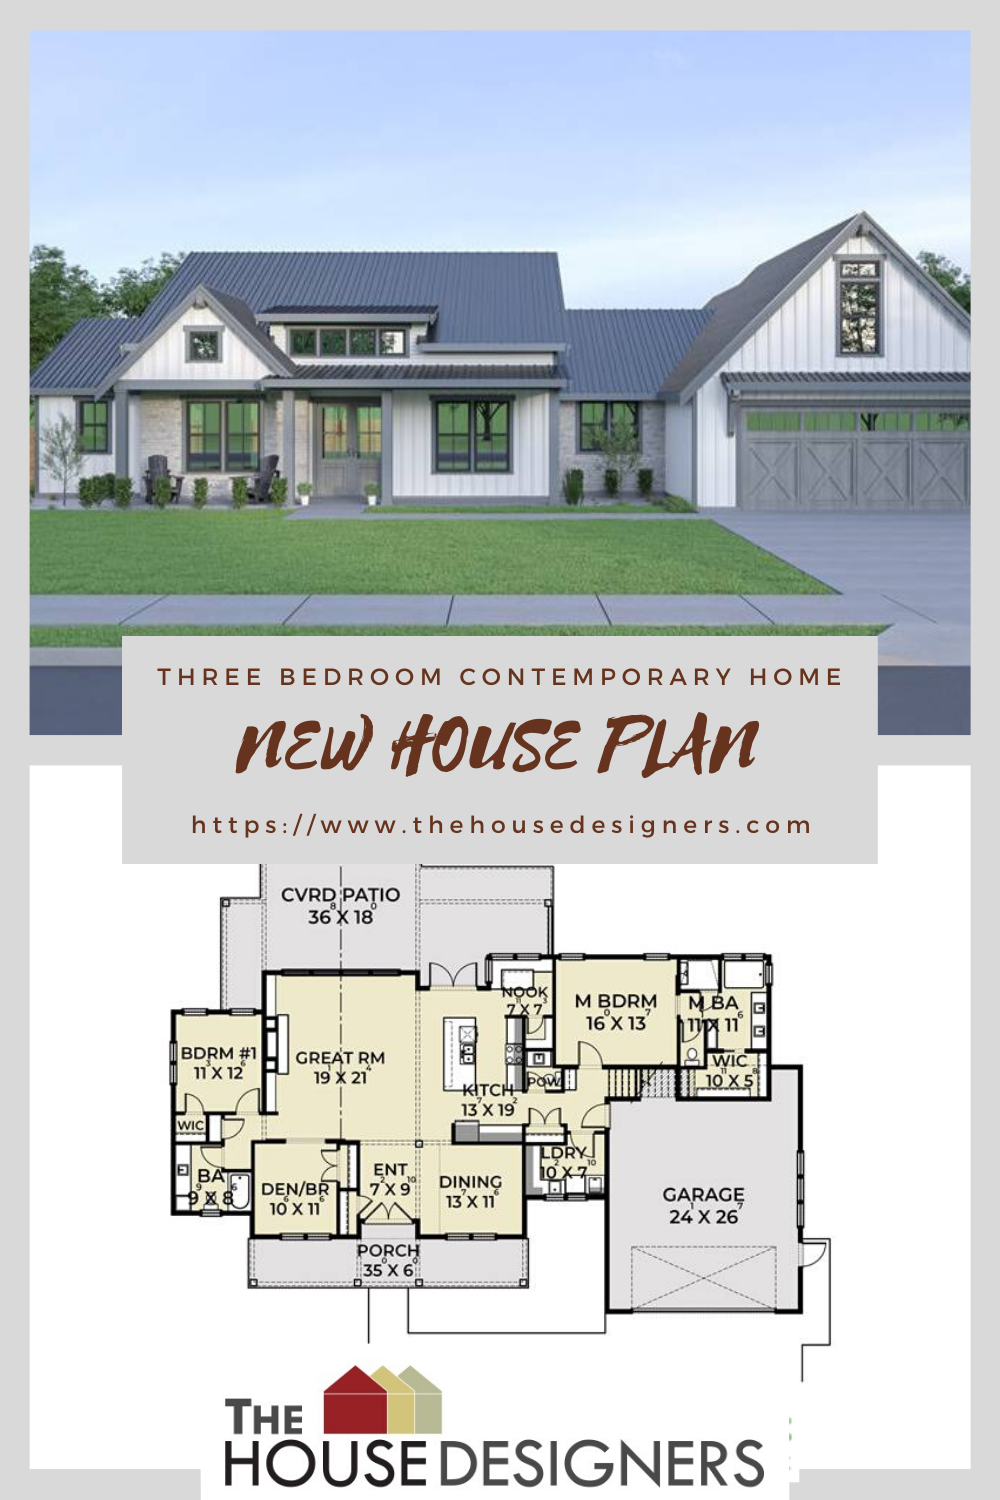 3 Bedroom Contemporary Farm House Style House Plan 8520 In 2020 New House Plans House Plans Architectural House Plans